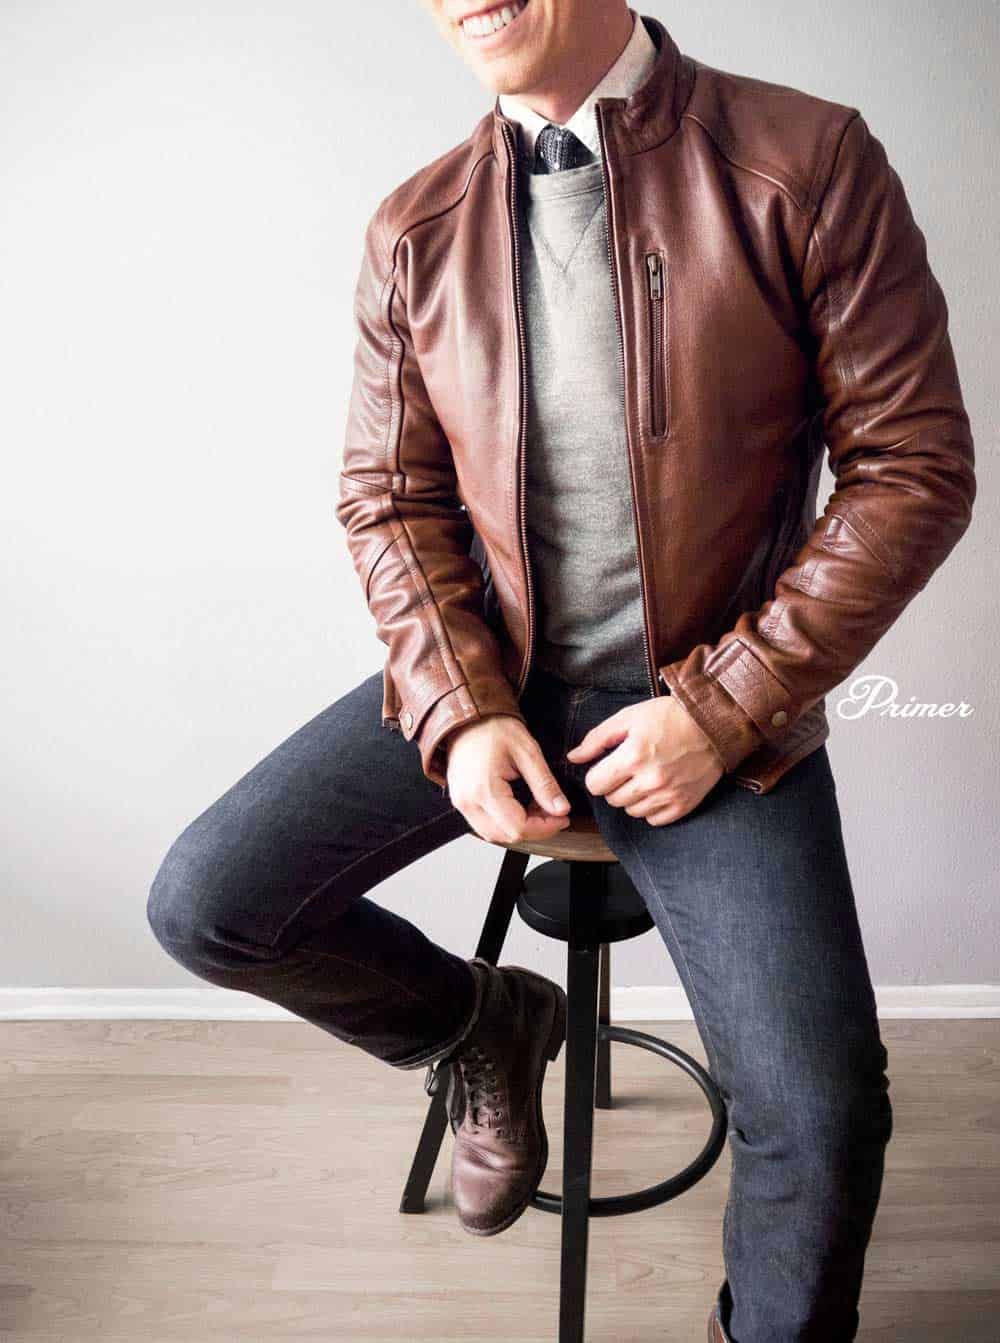 leather jacket with sweatshirt and tie